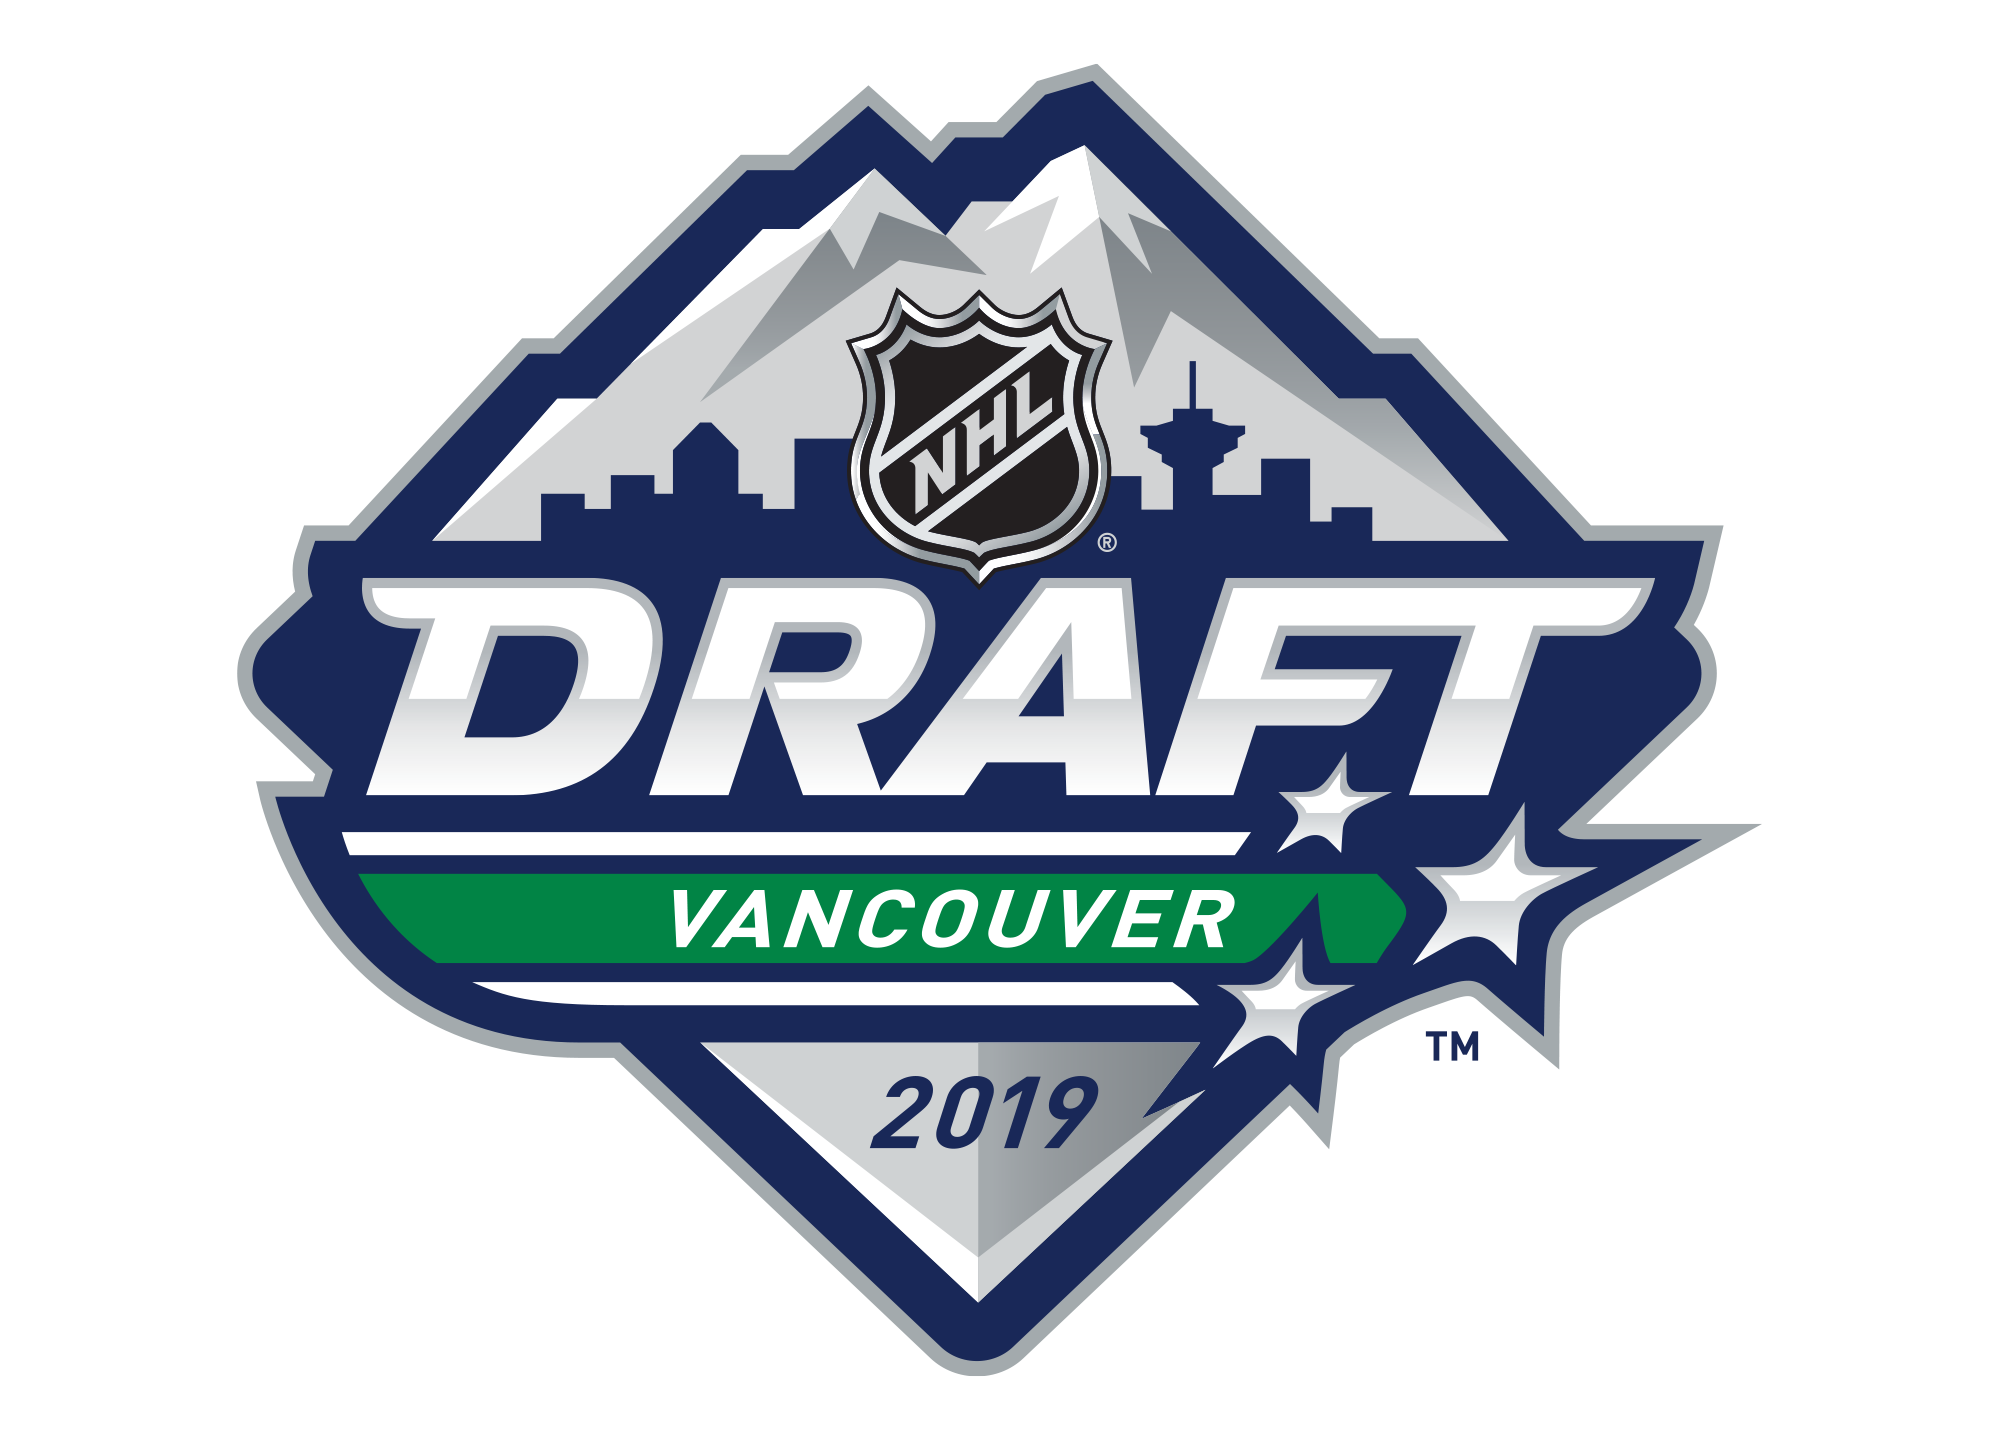 nhl draft logo_1561232088140.png.jpg